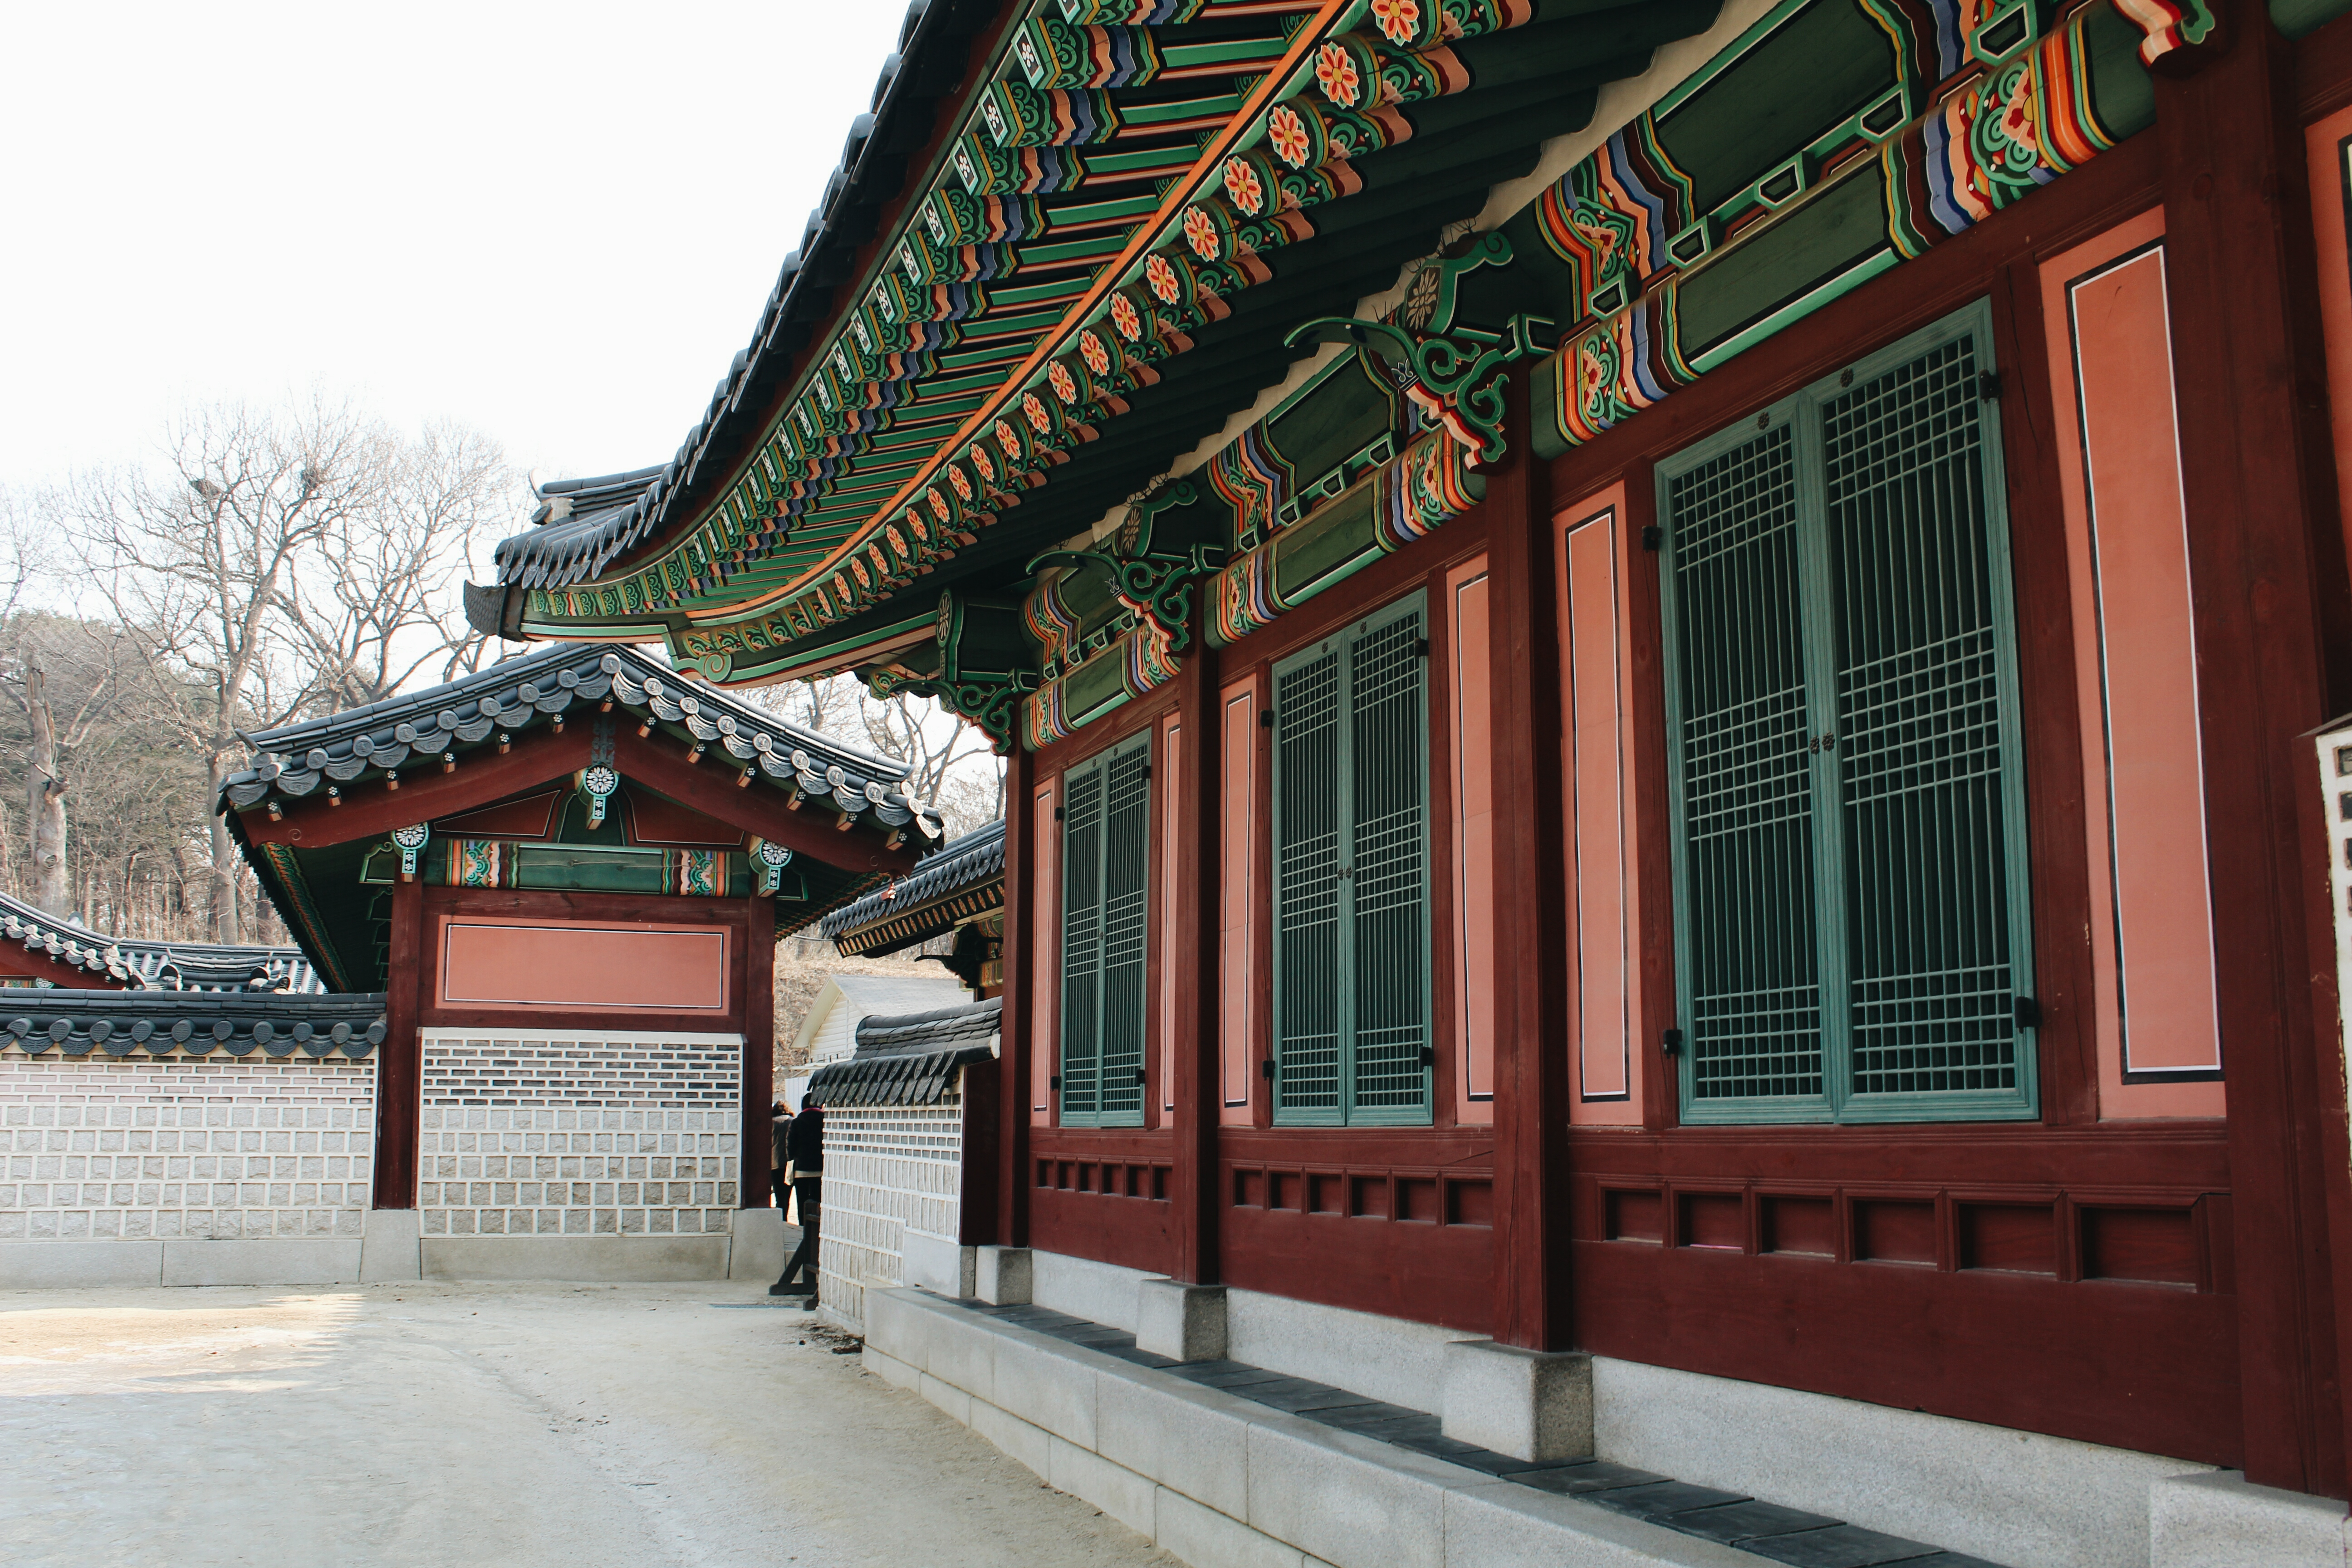 Parts of the beautifully-coloured Changdeokgung palace